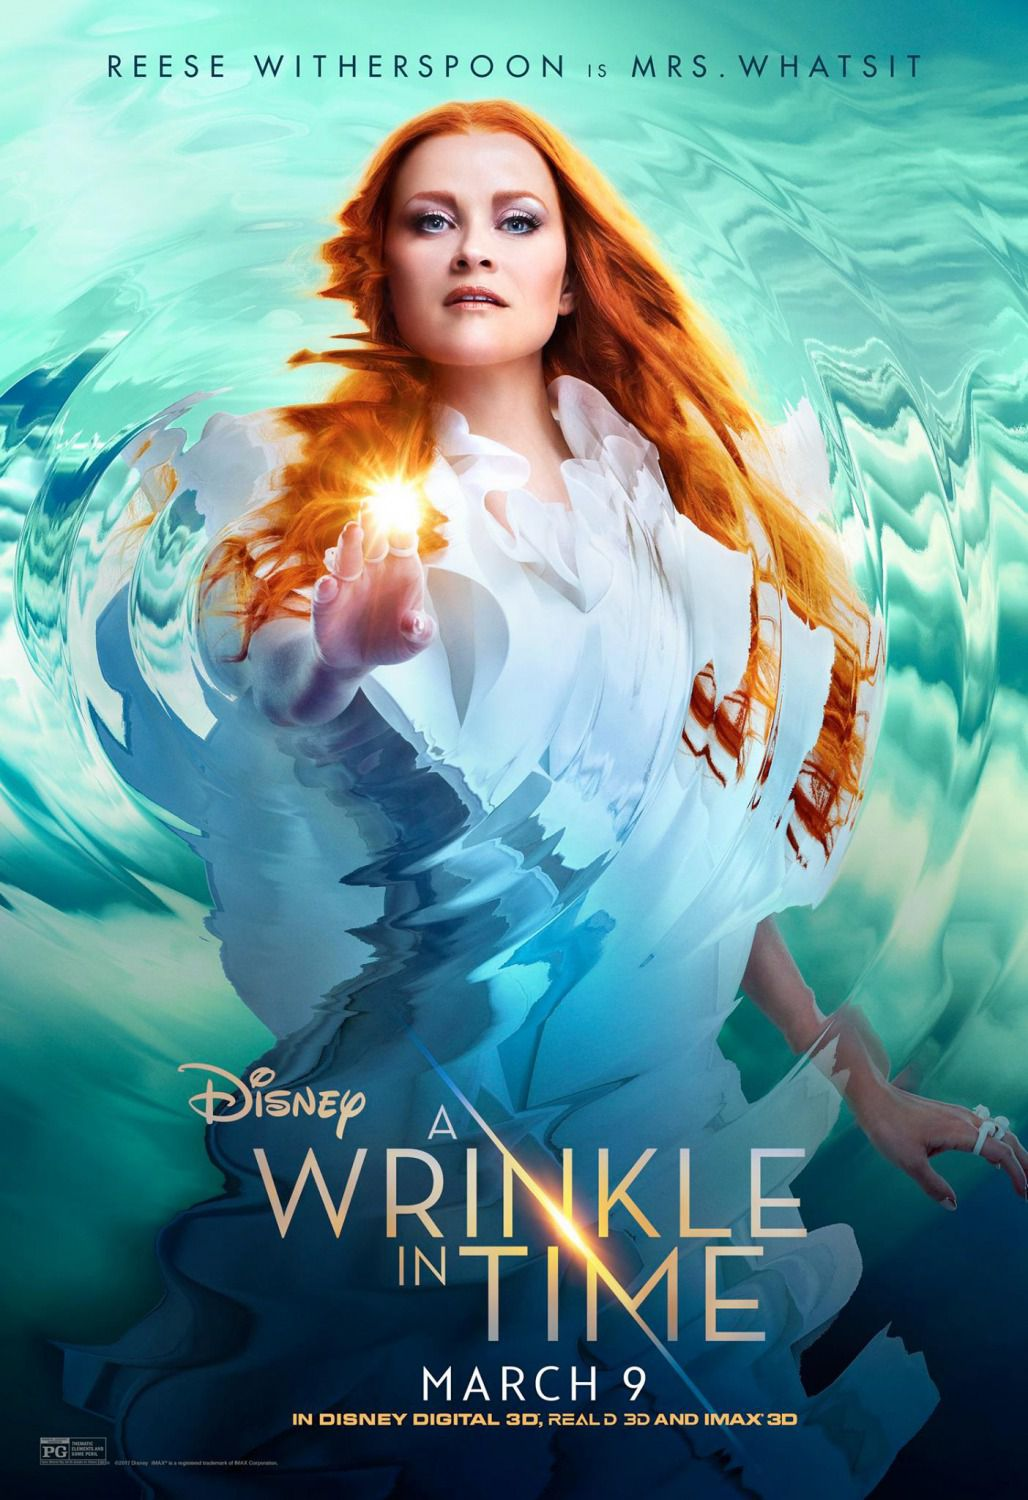 Wrinkle in Time - Reese Witherspoon is Mrs Whatsit